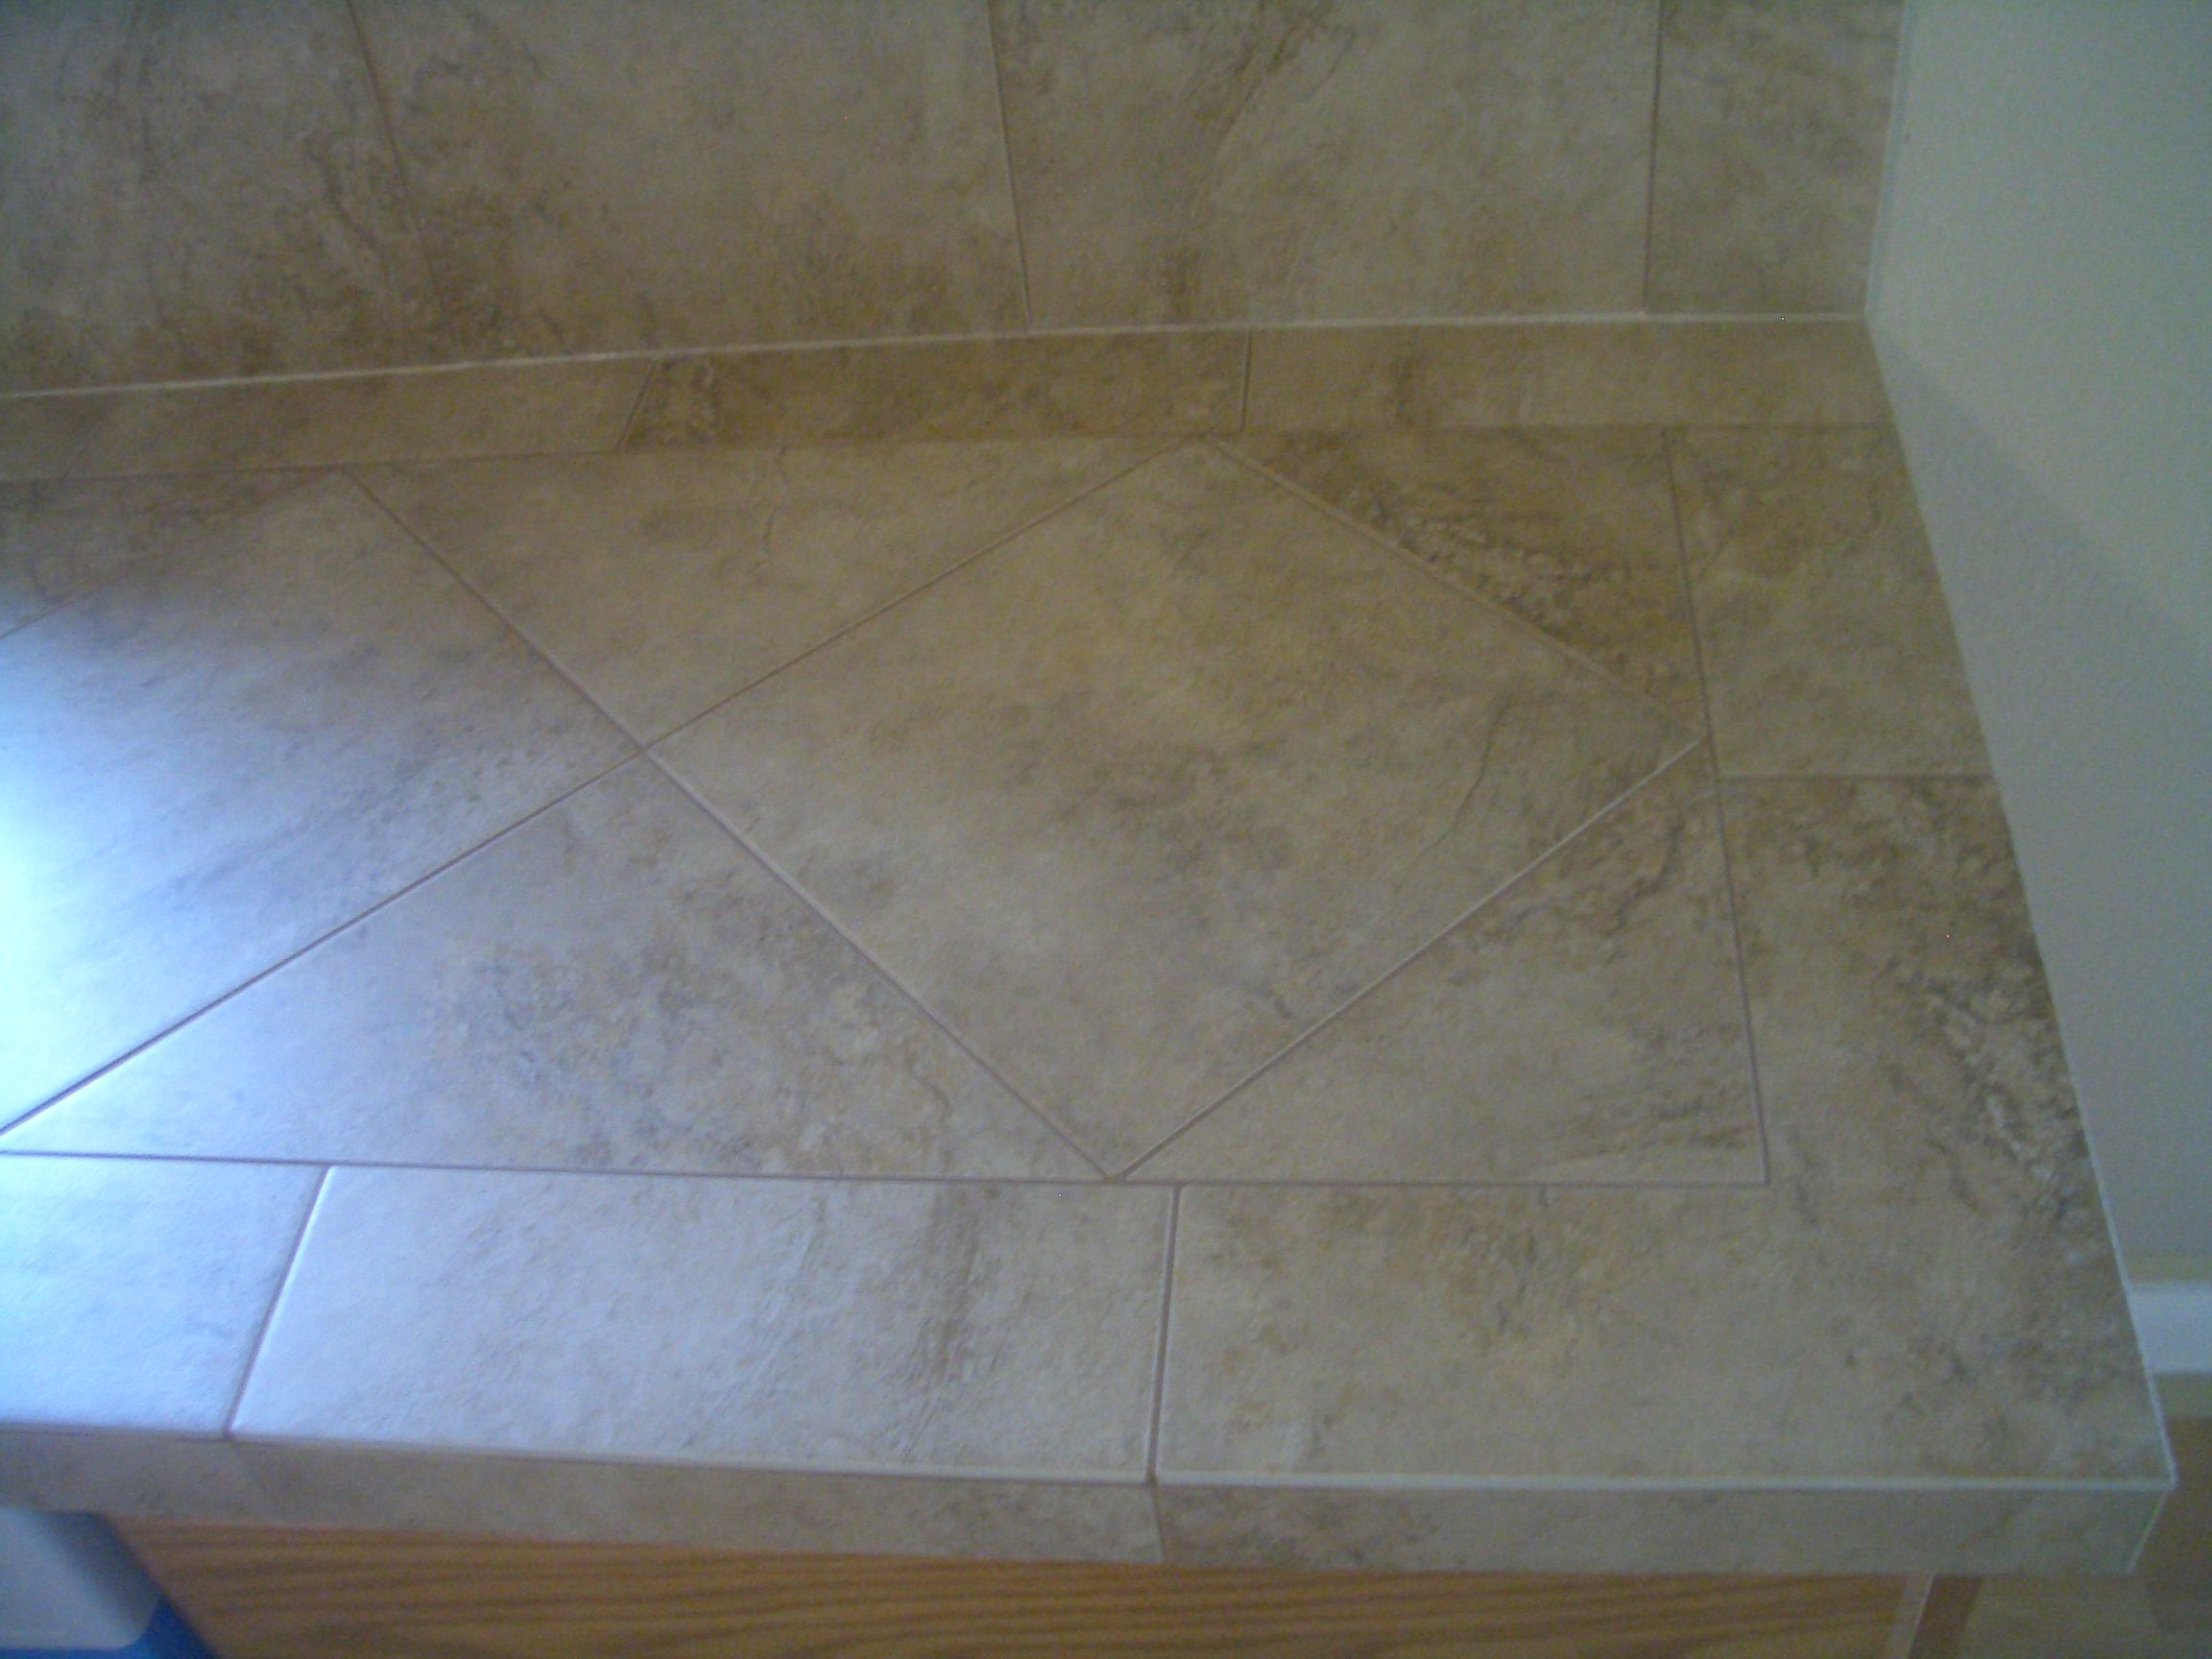 Porcelain Or Ceramic Tile For Kitchen Floor Porcelain Tile Backsplash Gallery Just Finished Up A Ceramic